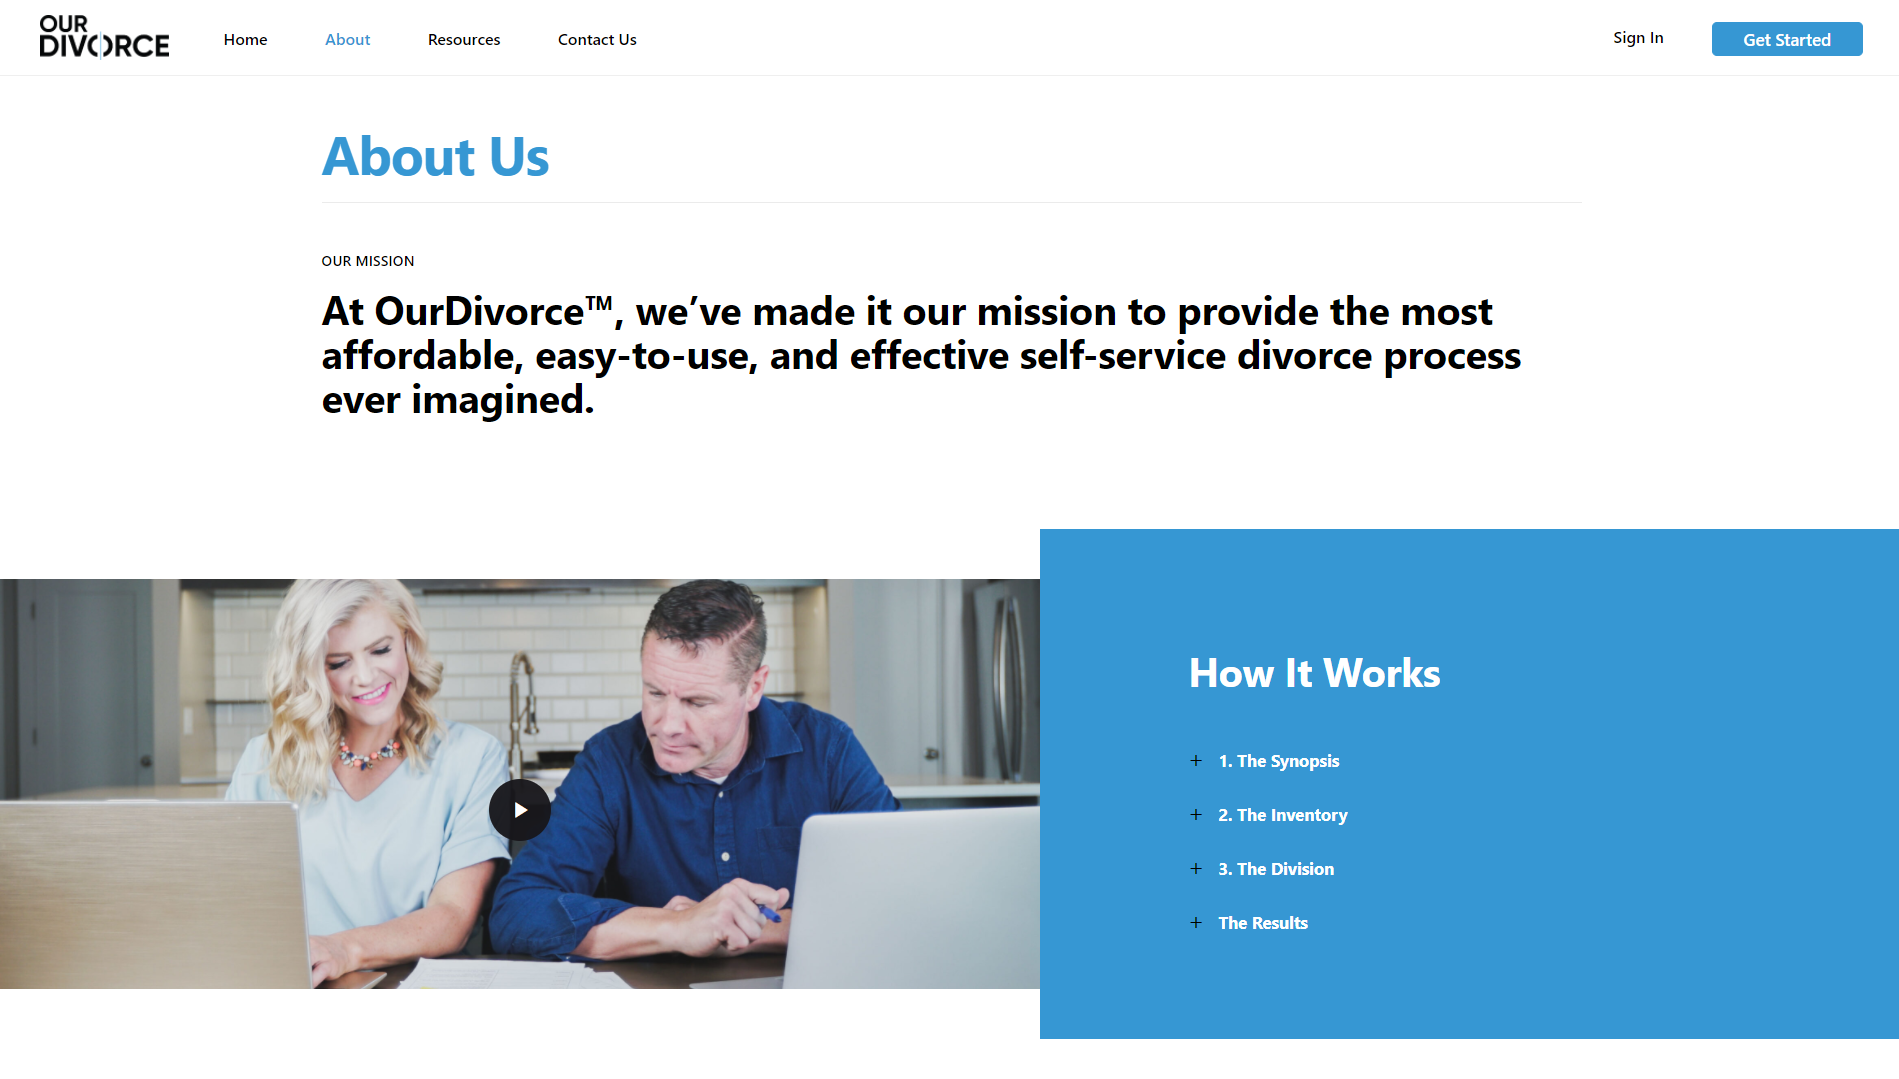 OurDivorce About Us Page design